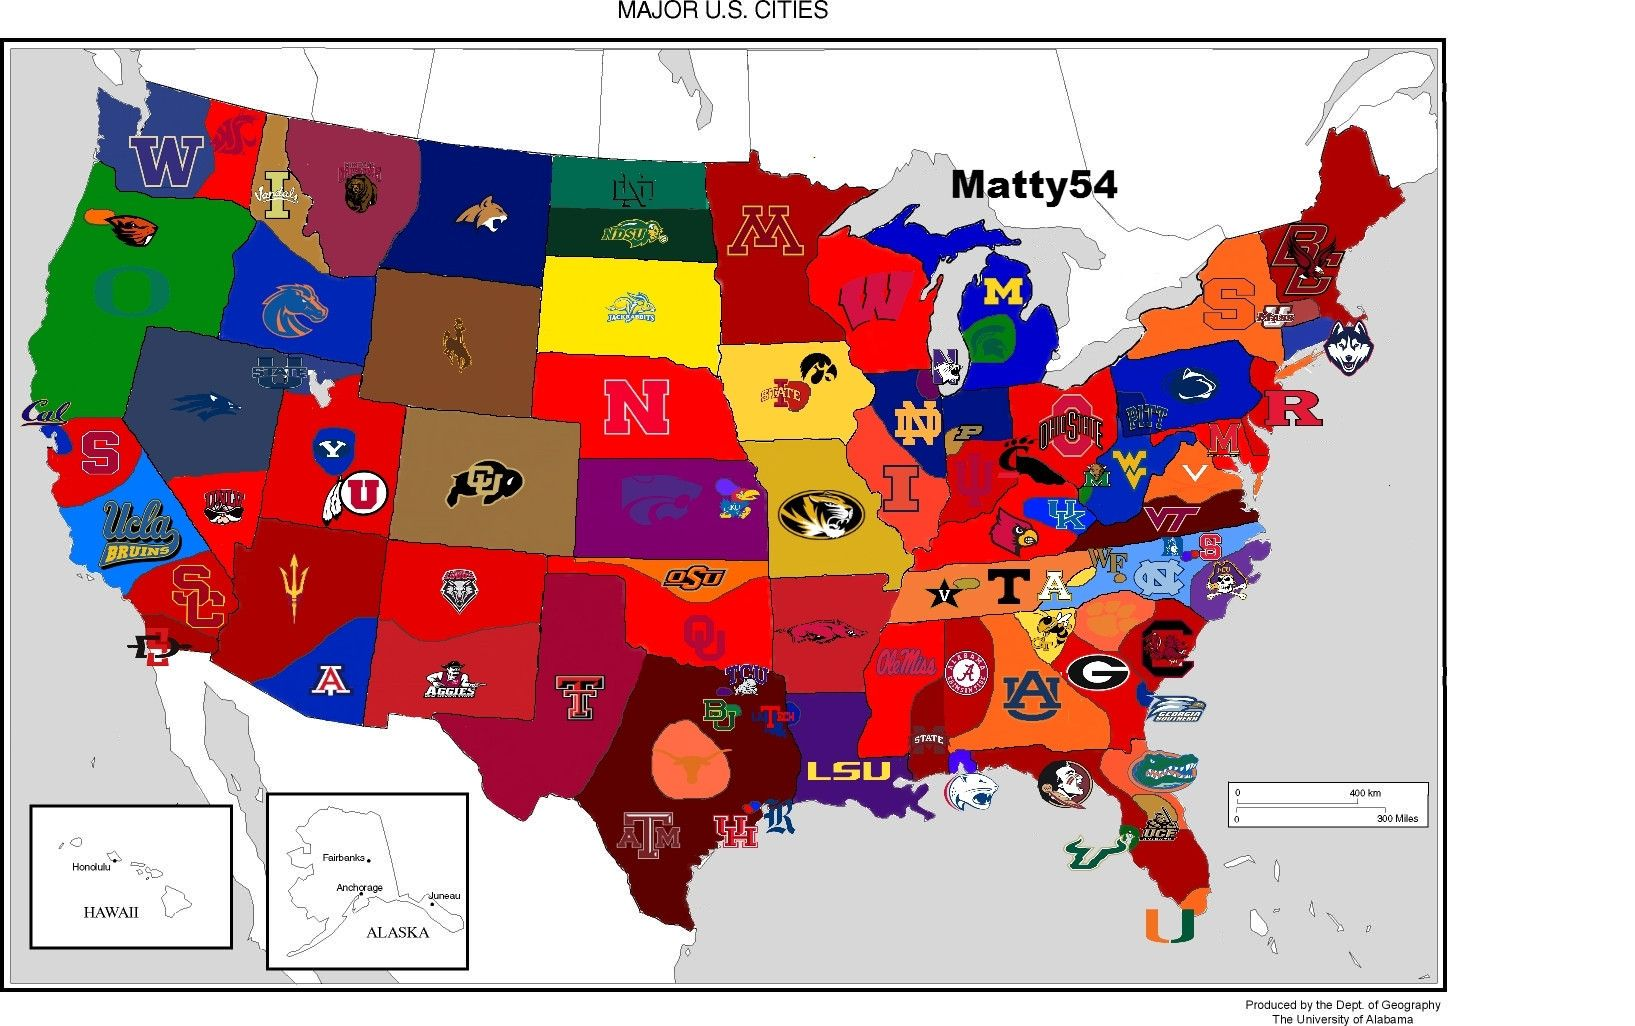 Your favorite college football team based on where you live